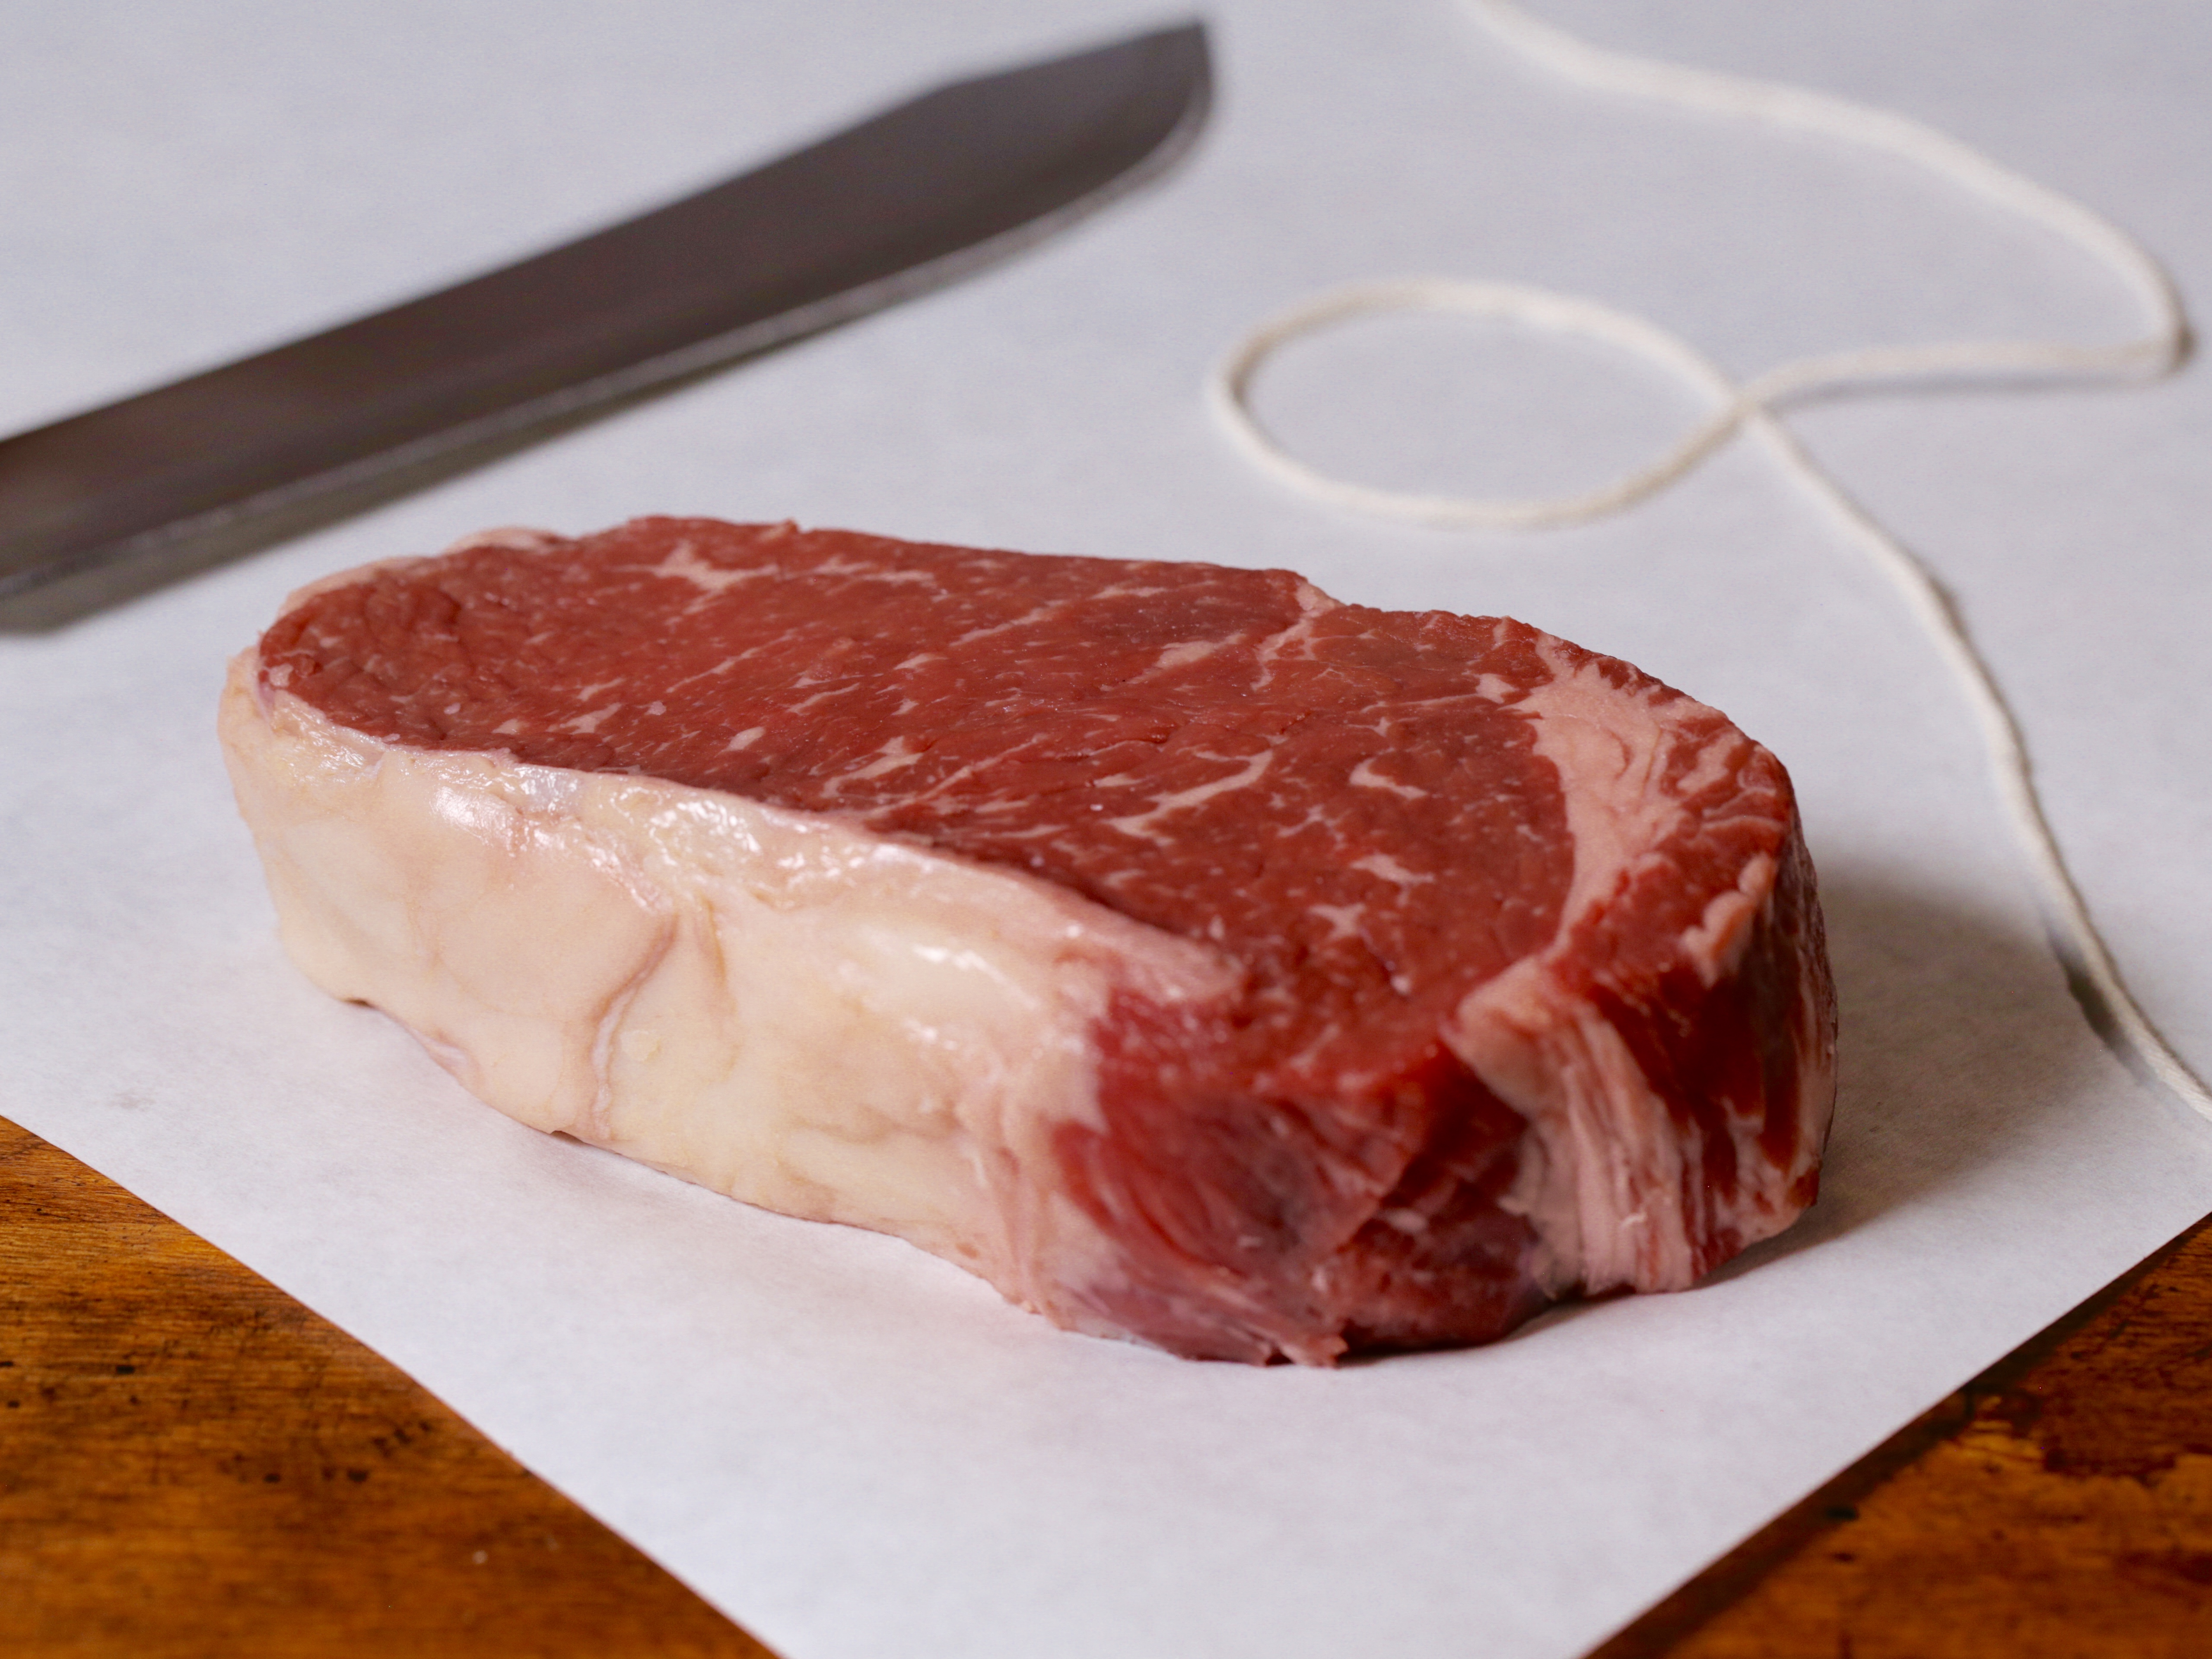 Strip steak or ribeye about